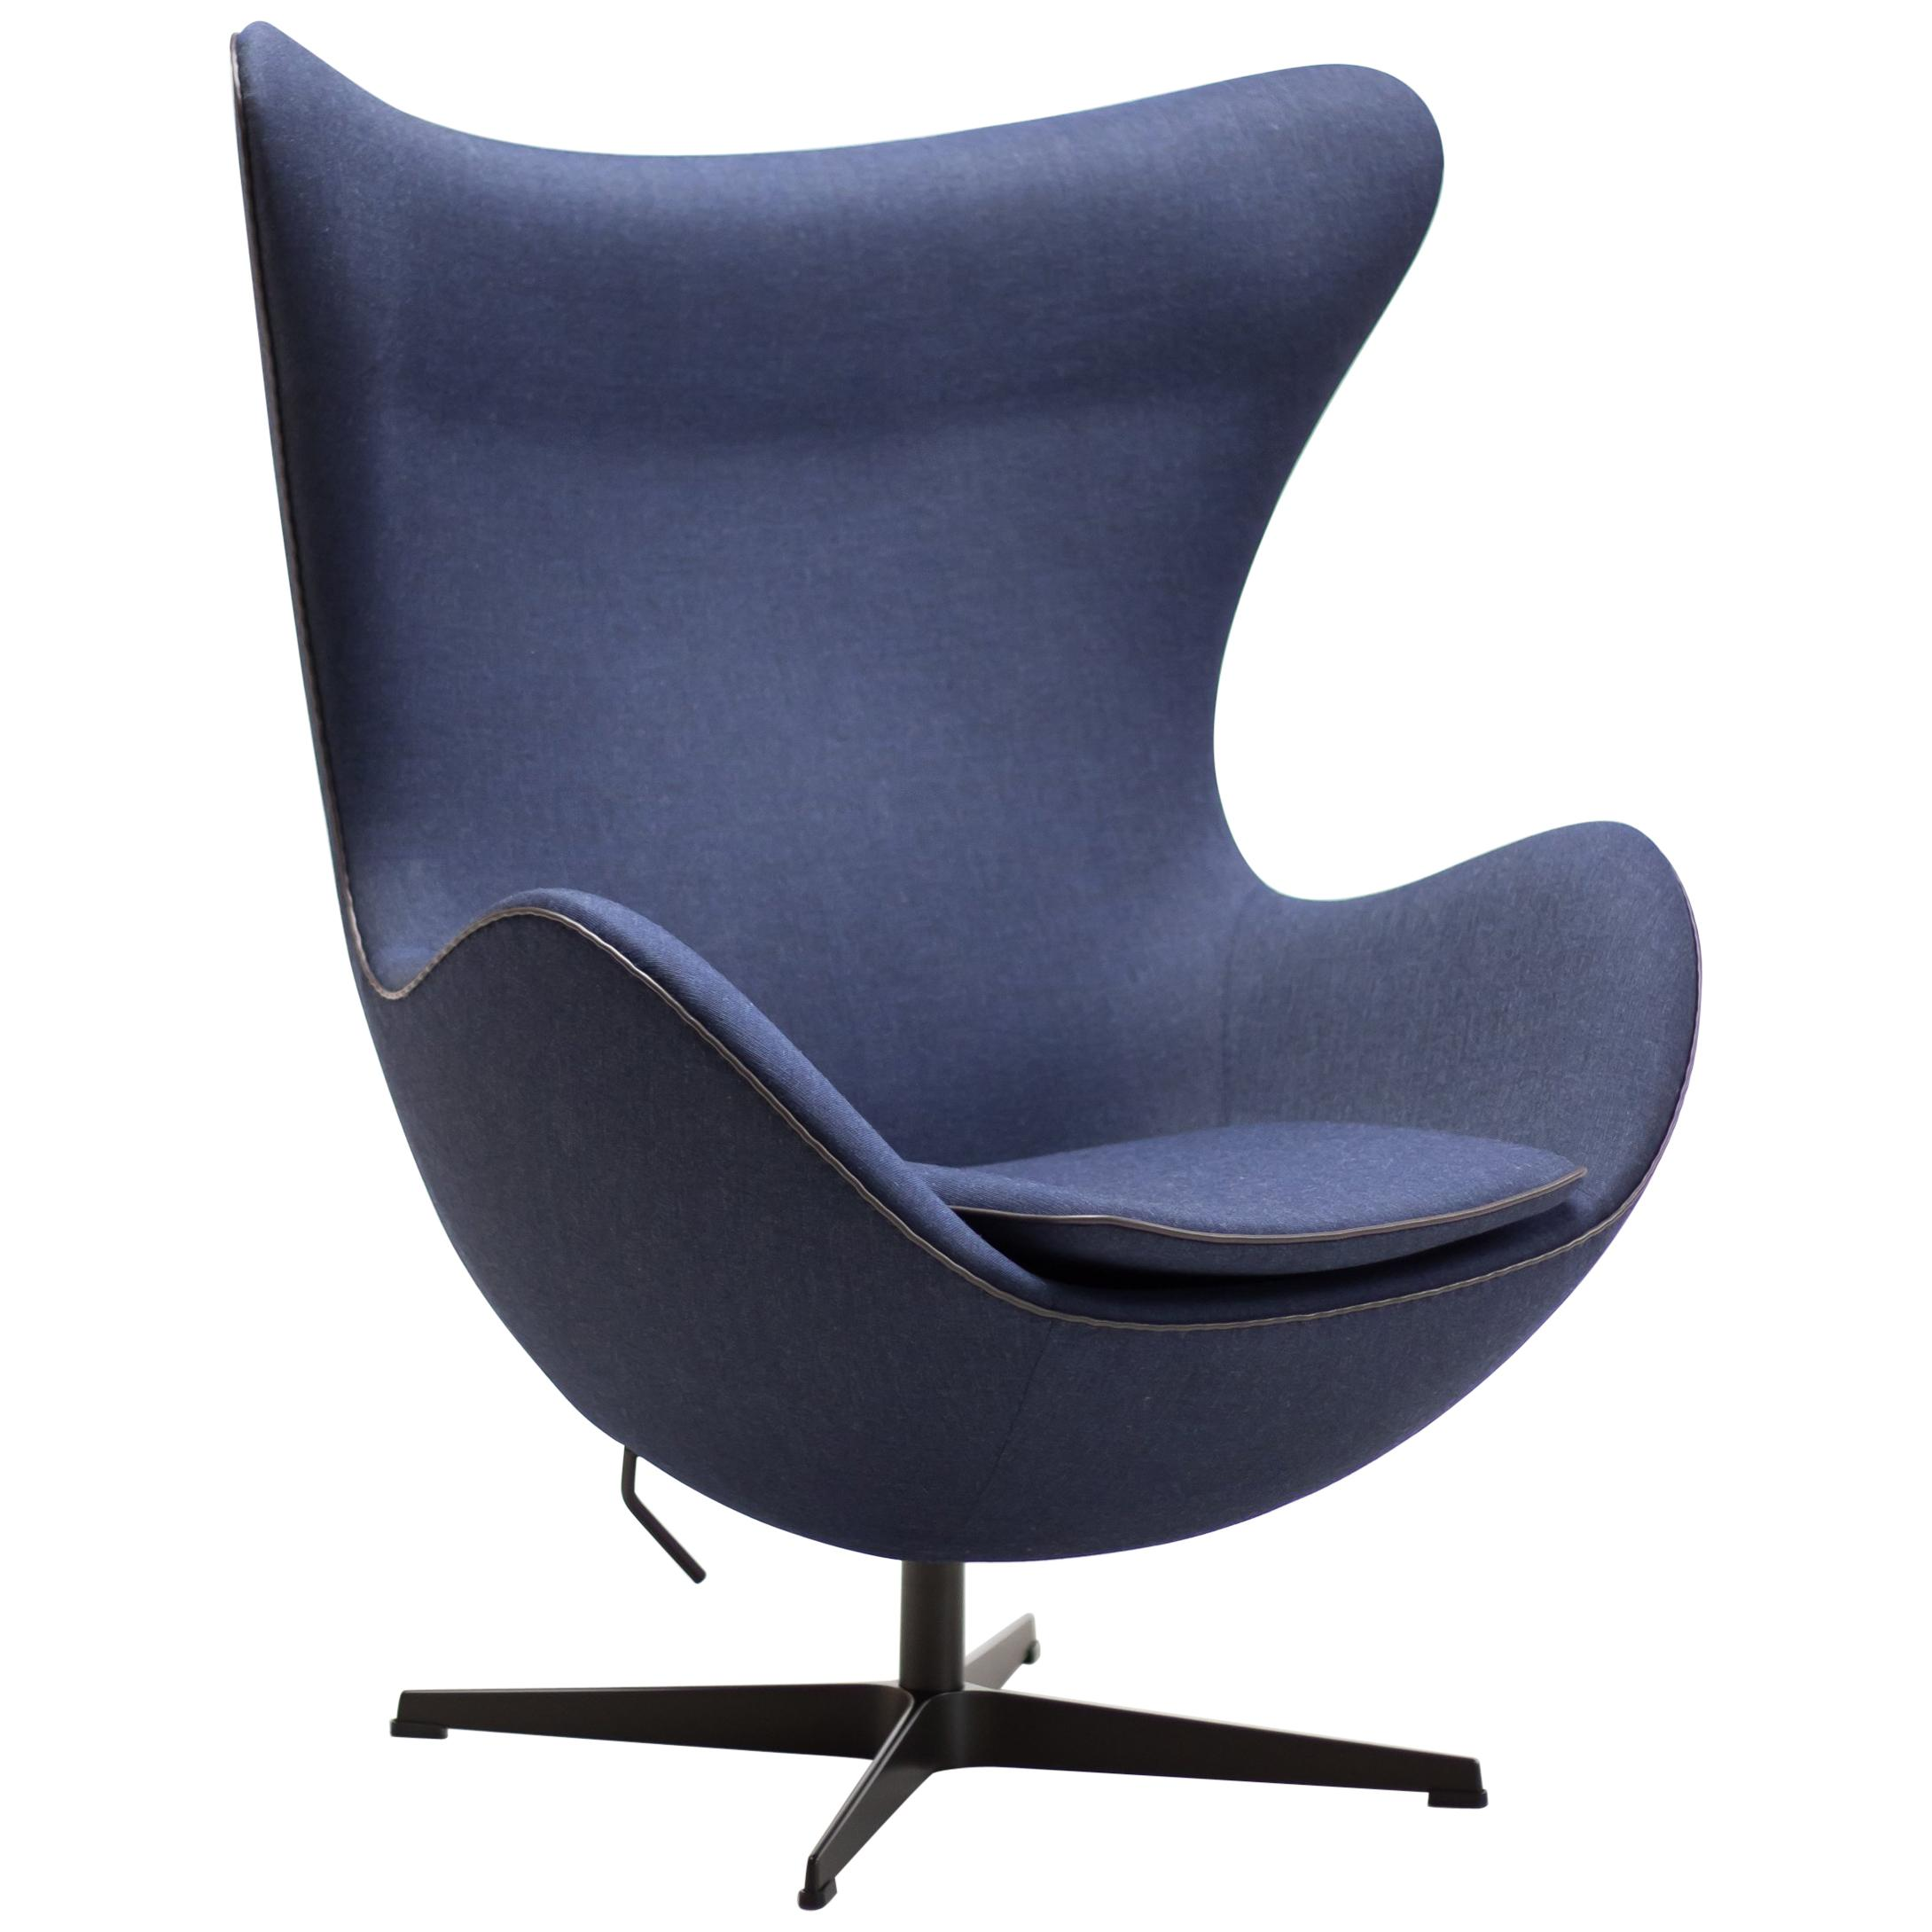 Limited Edition Egg Chair By Arne Jacobsen My Modern